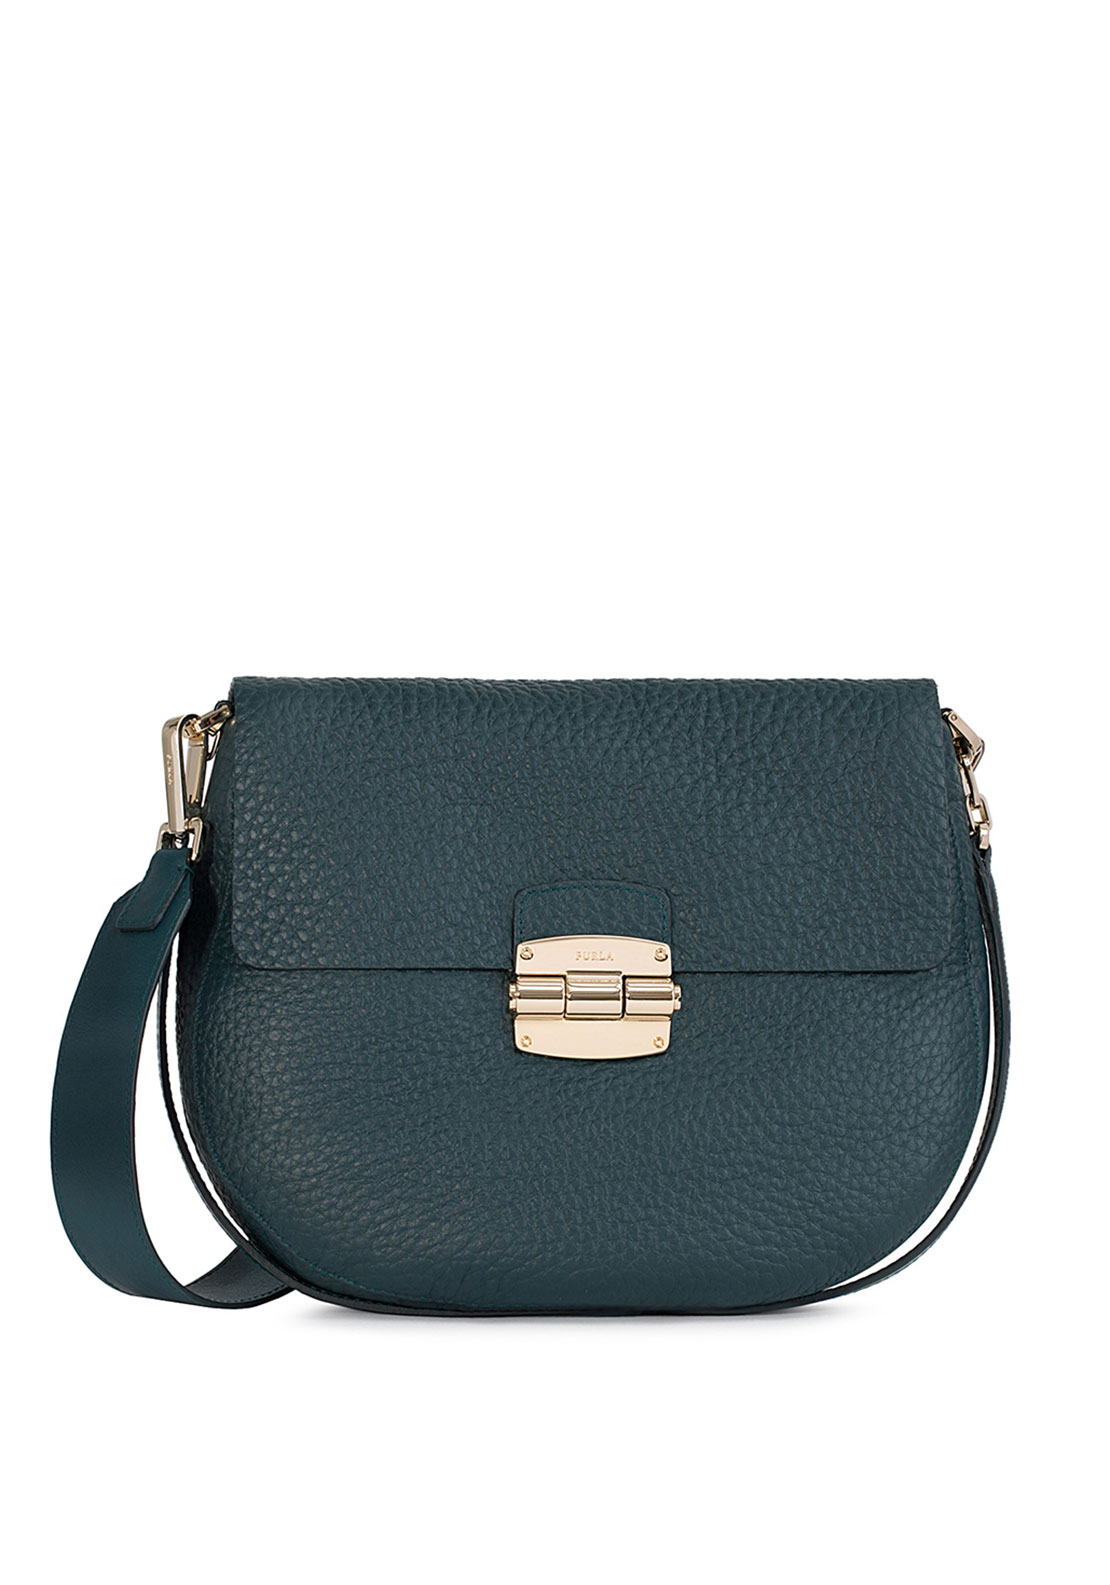 Furla Club Crossbody, Teal Green